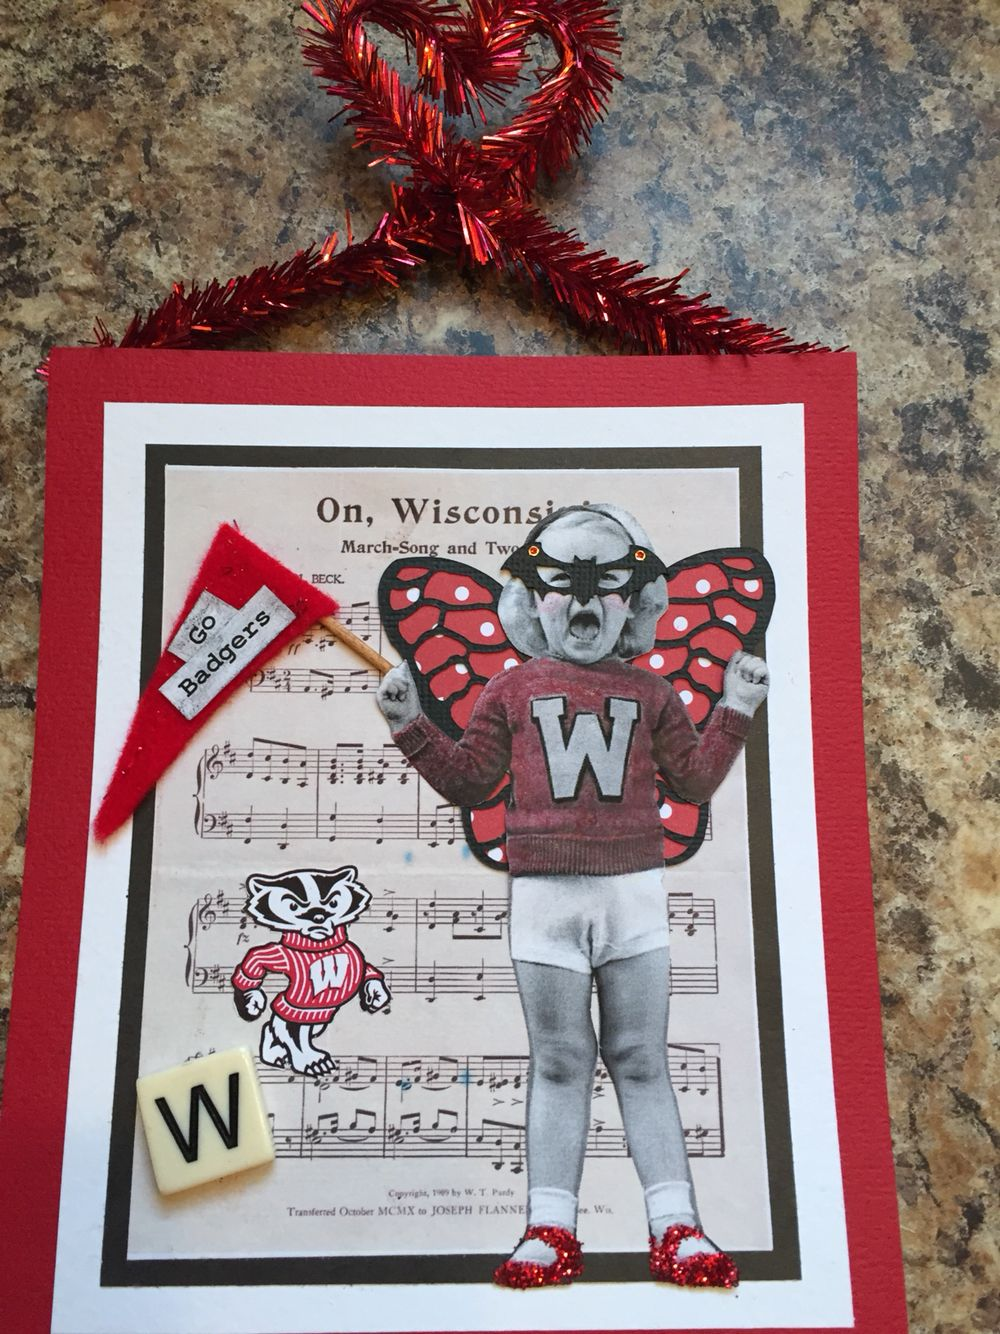 My first attempt at altered photos. I made this for the biggest Wisconsin Badger fan I know.